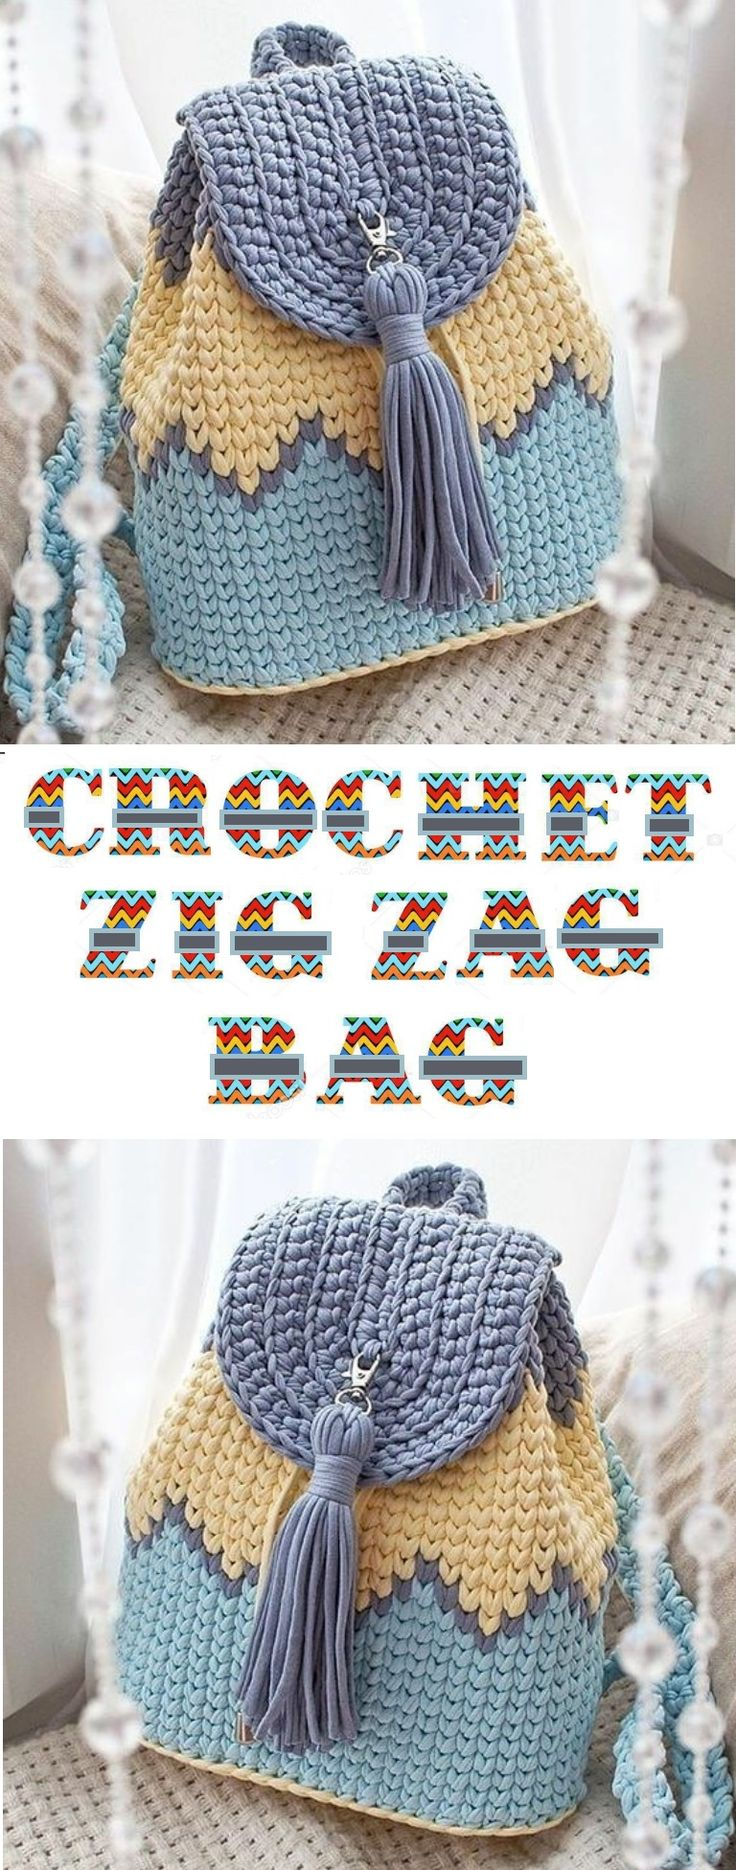 How to crochet a backpack